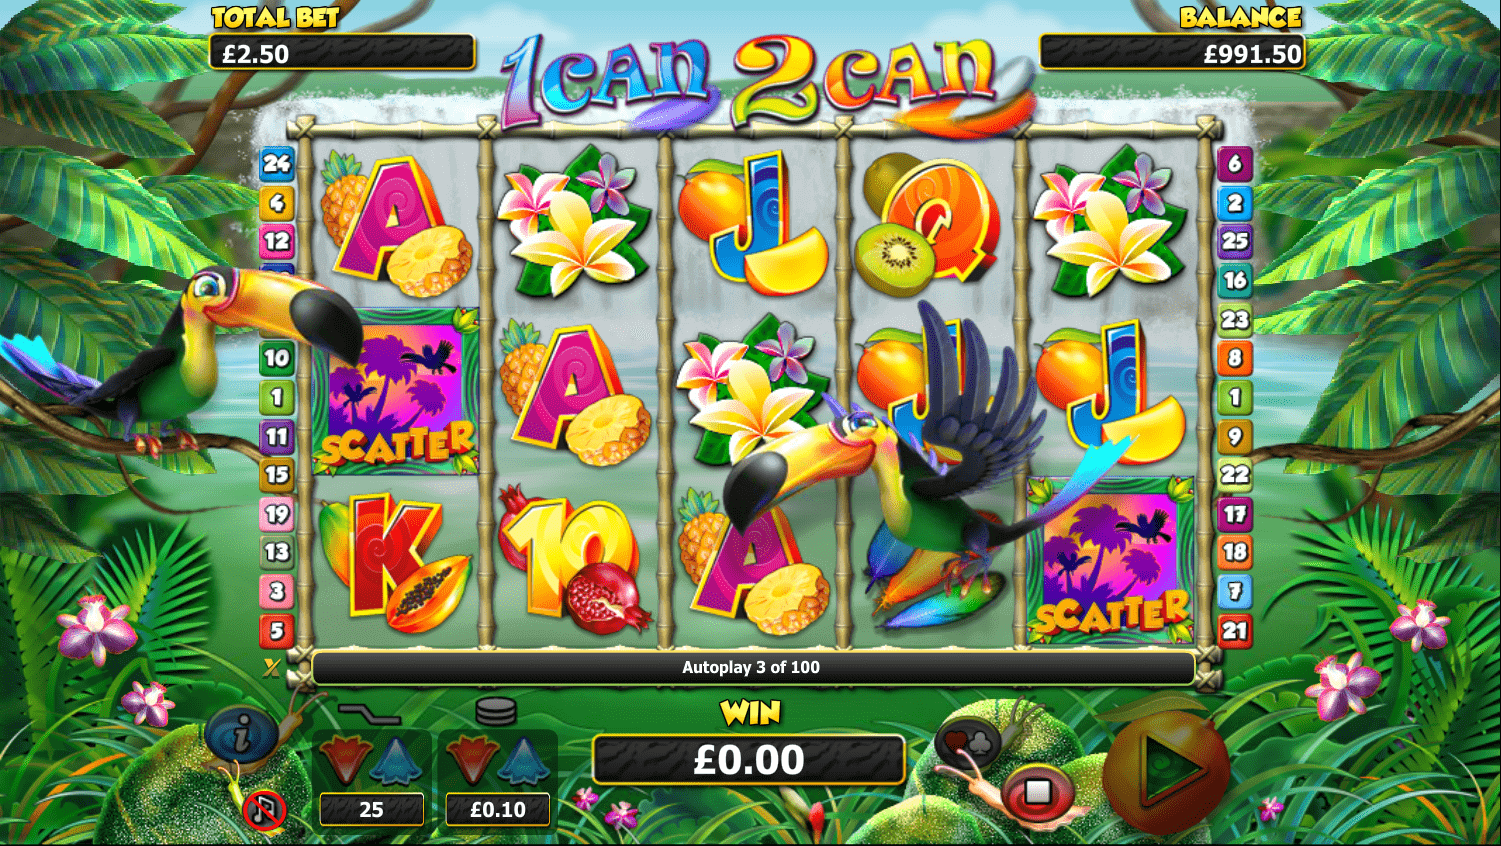 1 Can 2 Can Slot Gameplay